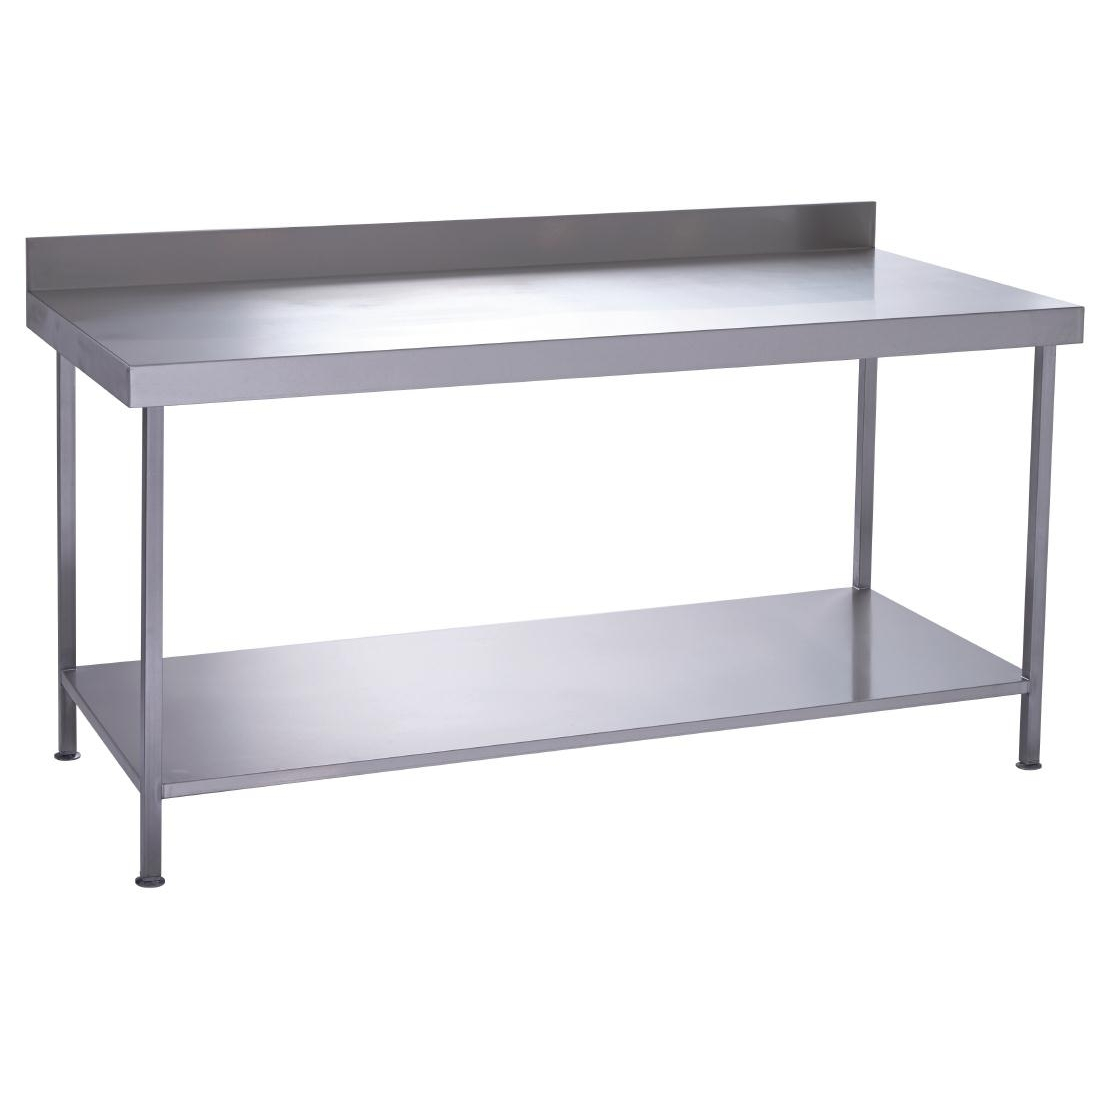 Parry Fully Welded Stainless Steel Wall Table with Undershelf 1500x600mm